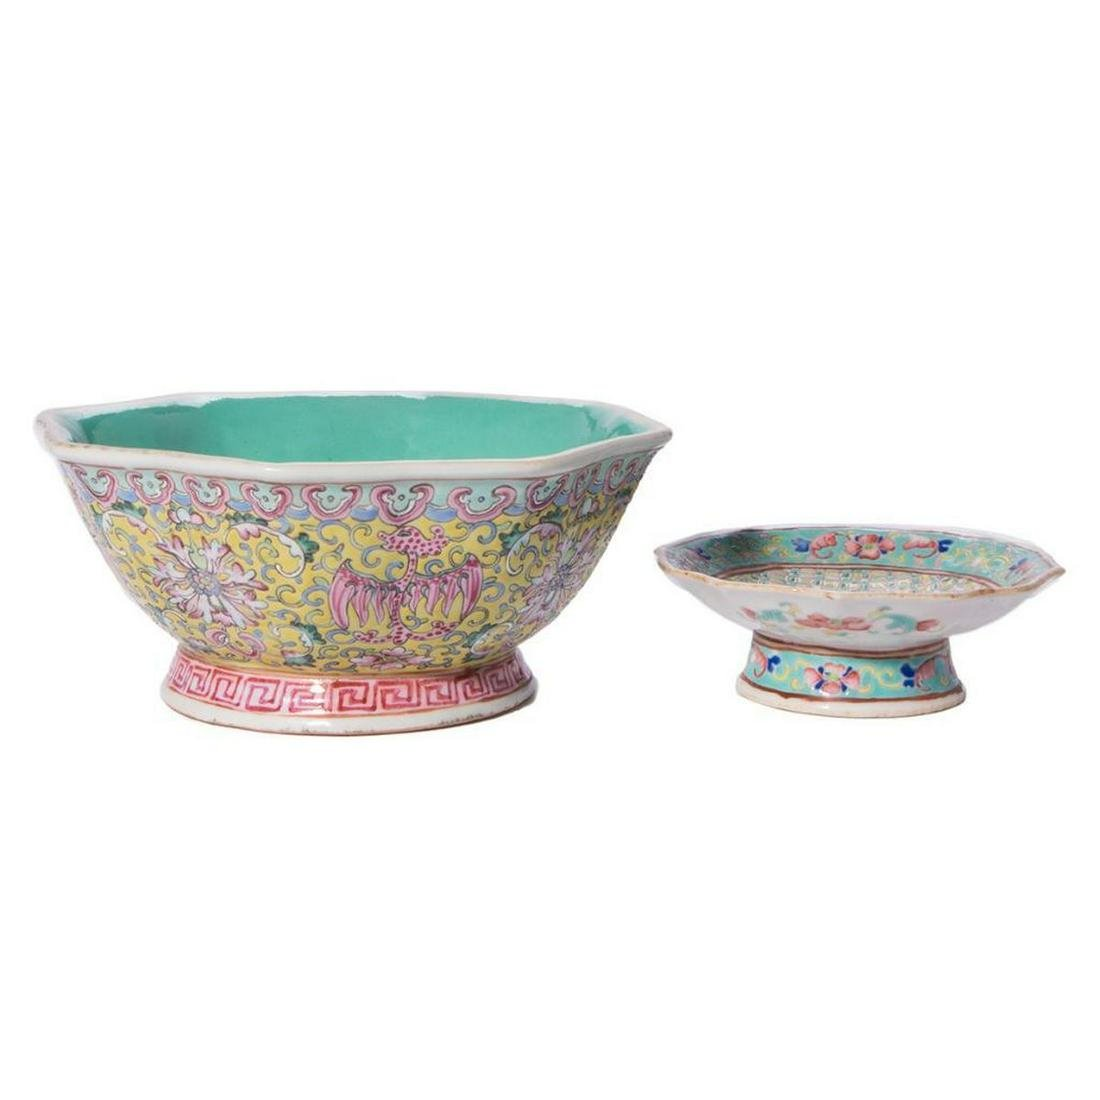 Two polychrome Chinese bowls.